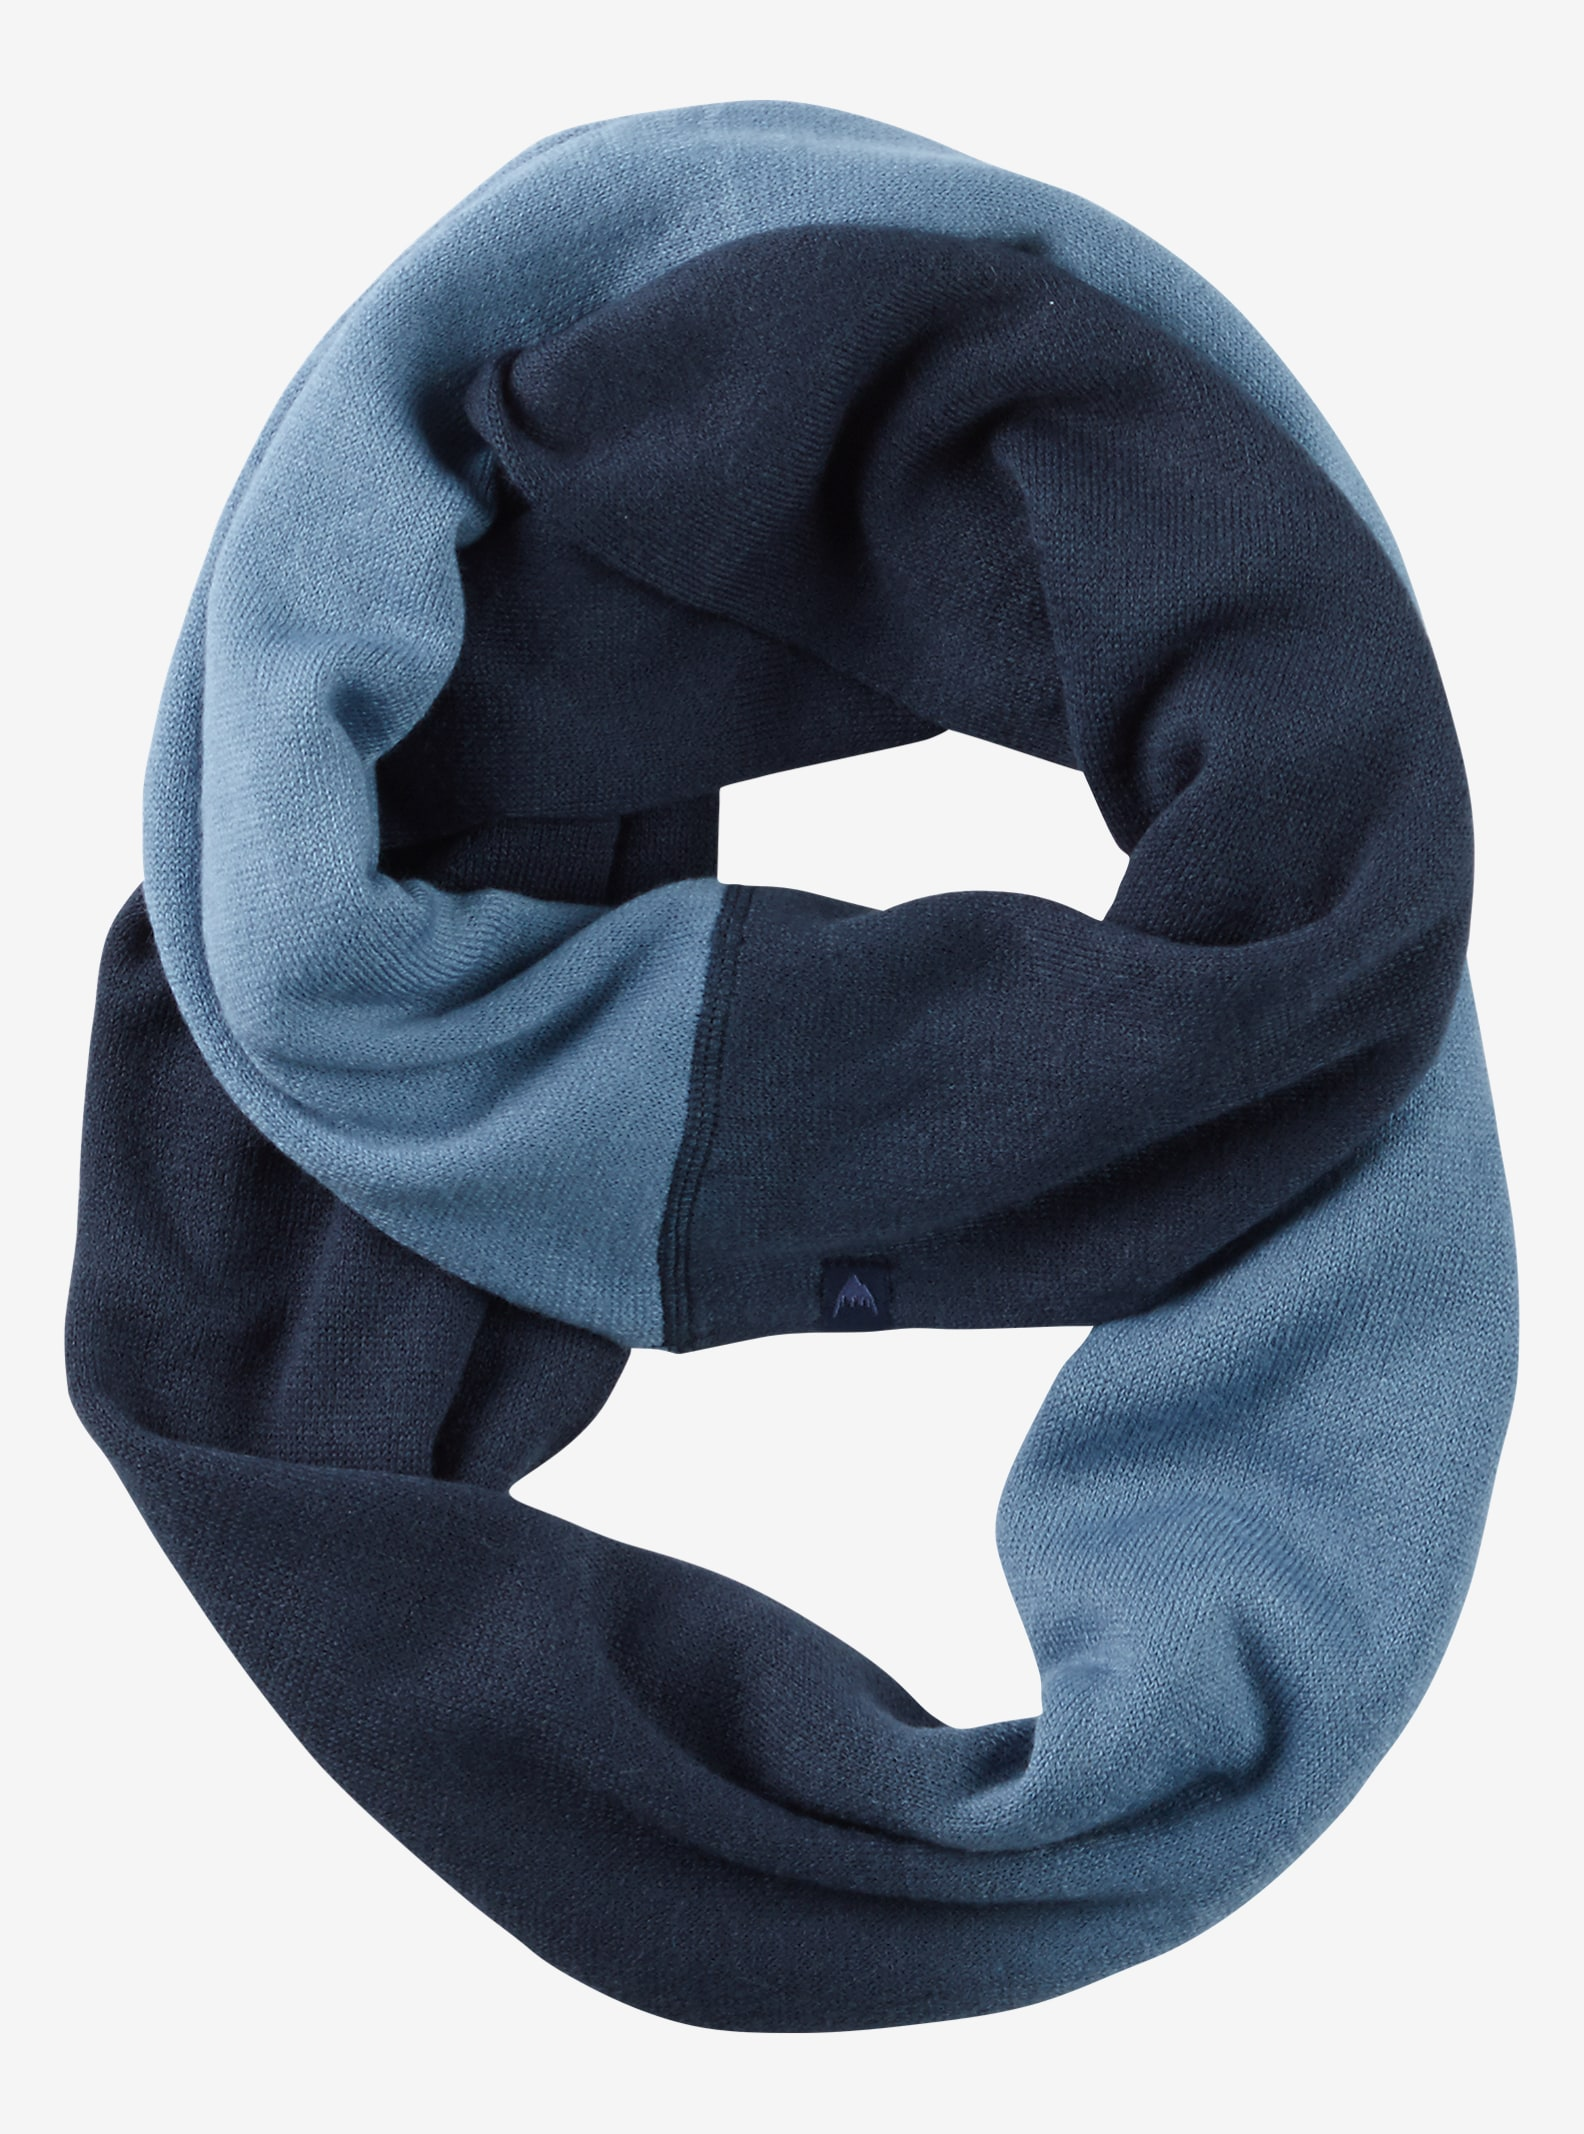 Burton Crush Scarf shown in Mood Indigo / Infinity